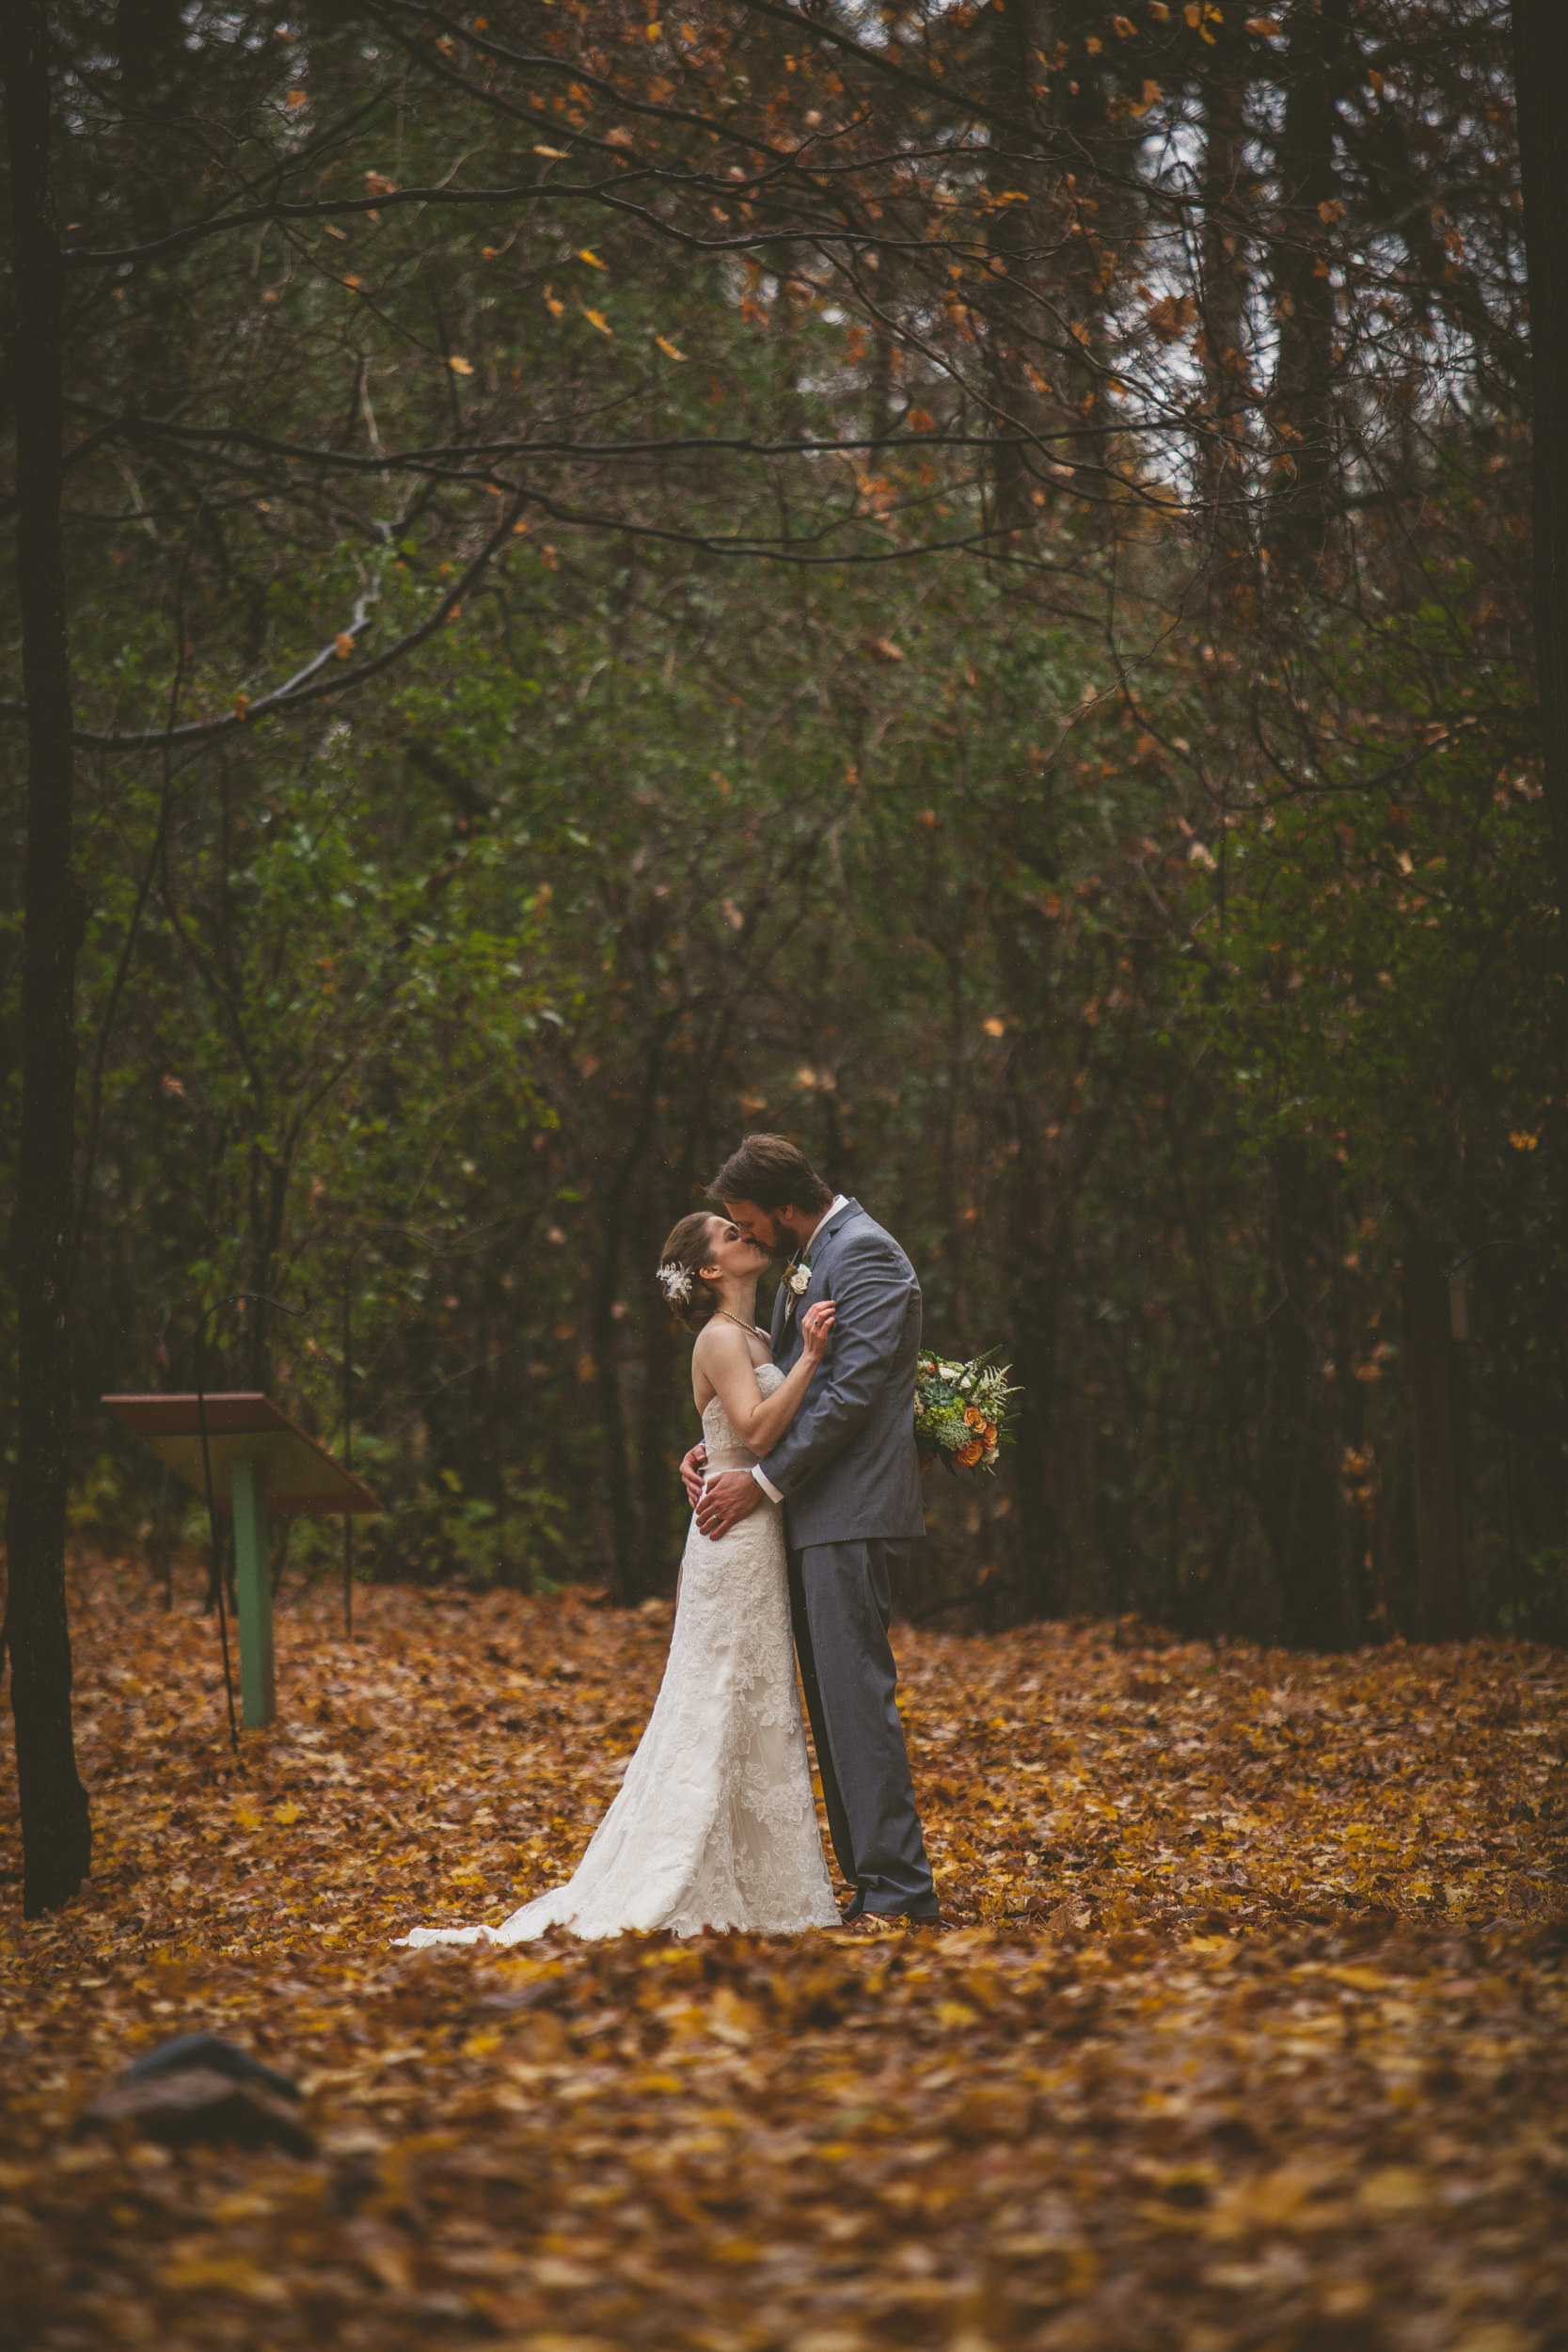 kortright center wedding photography 219 - Supporting Friends with Small Businesses